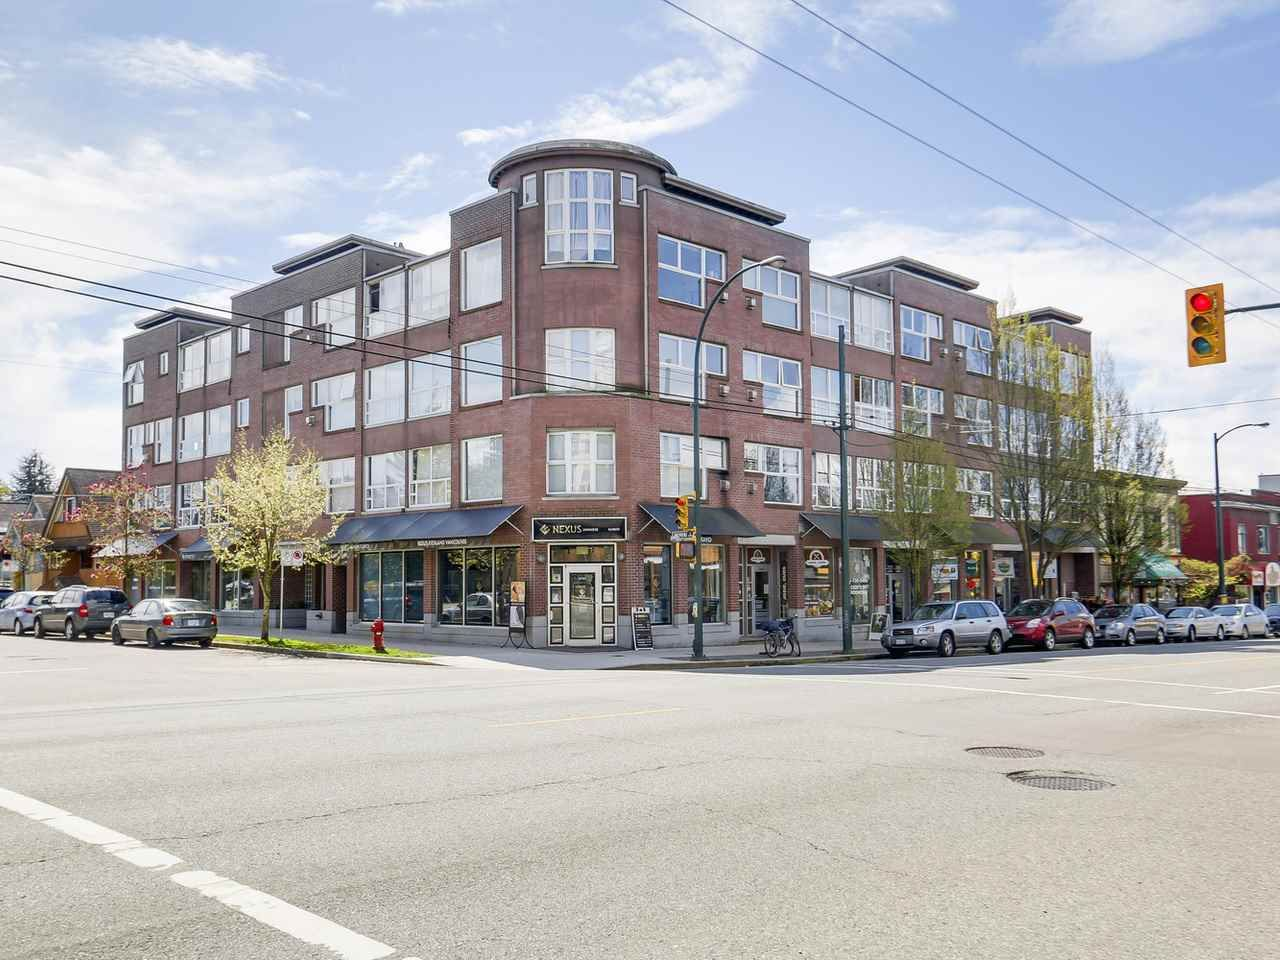 """Main Photo: 303 2025 STEPHENS Street in Vancouver: Kitsilano Condo for sale in """"STEPHENS COURT"""" (Vancouver West)  : MLS®# R2161721"""